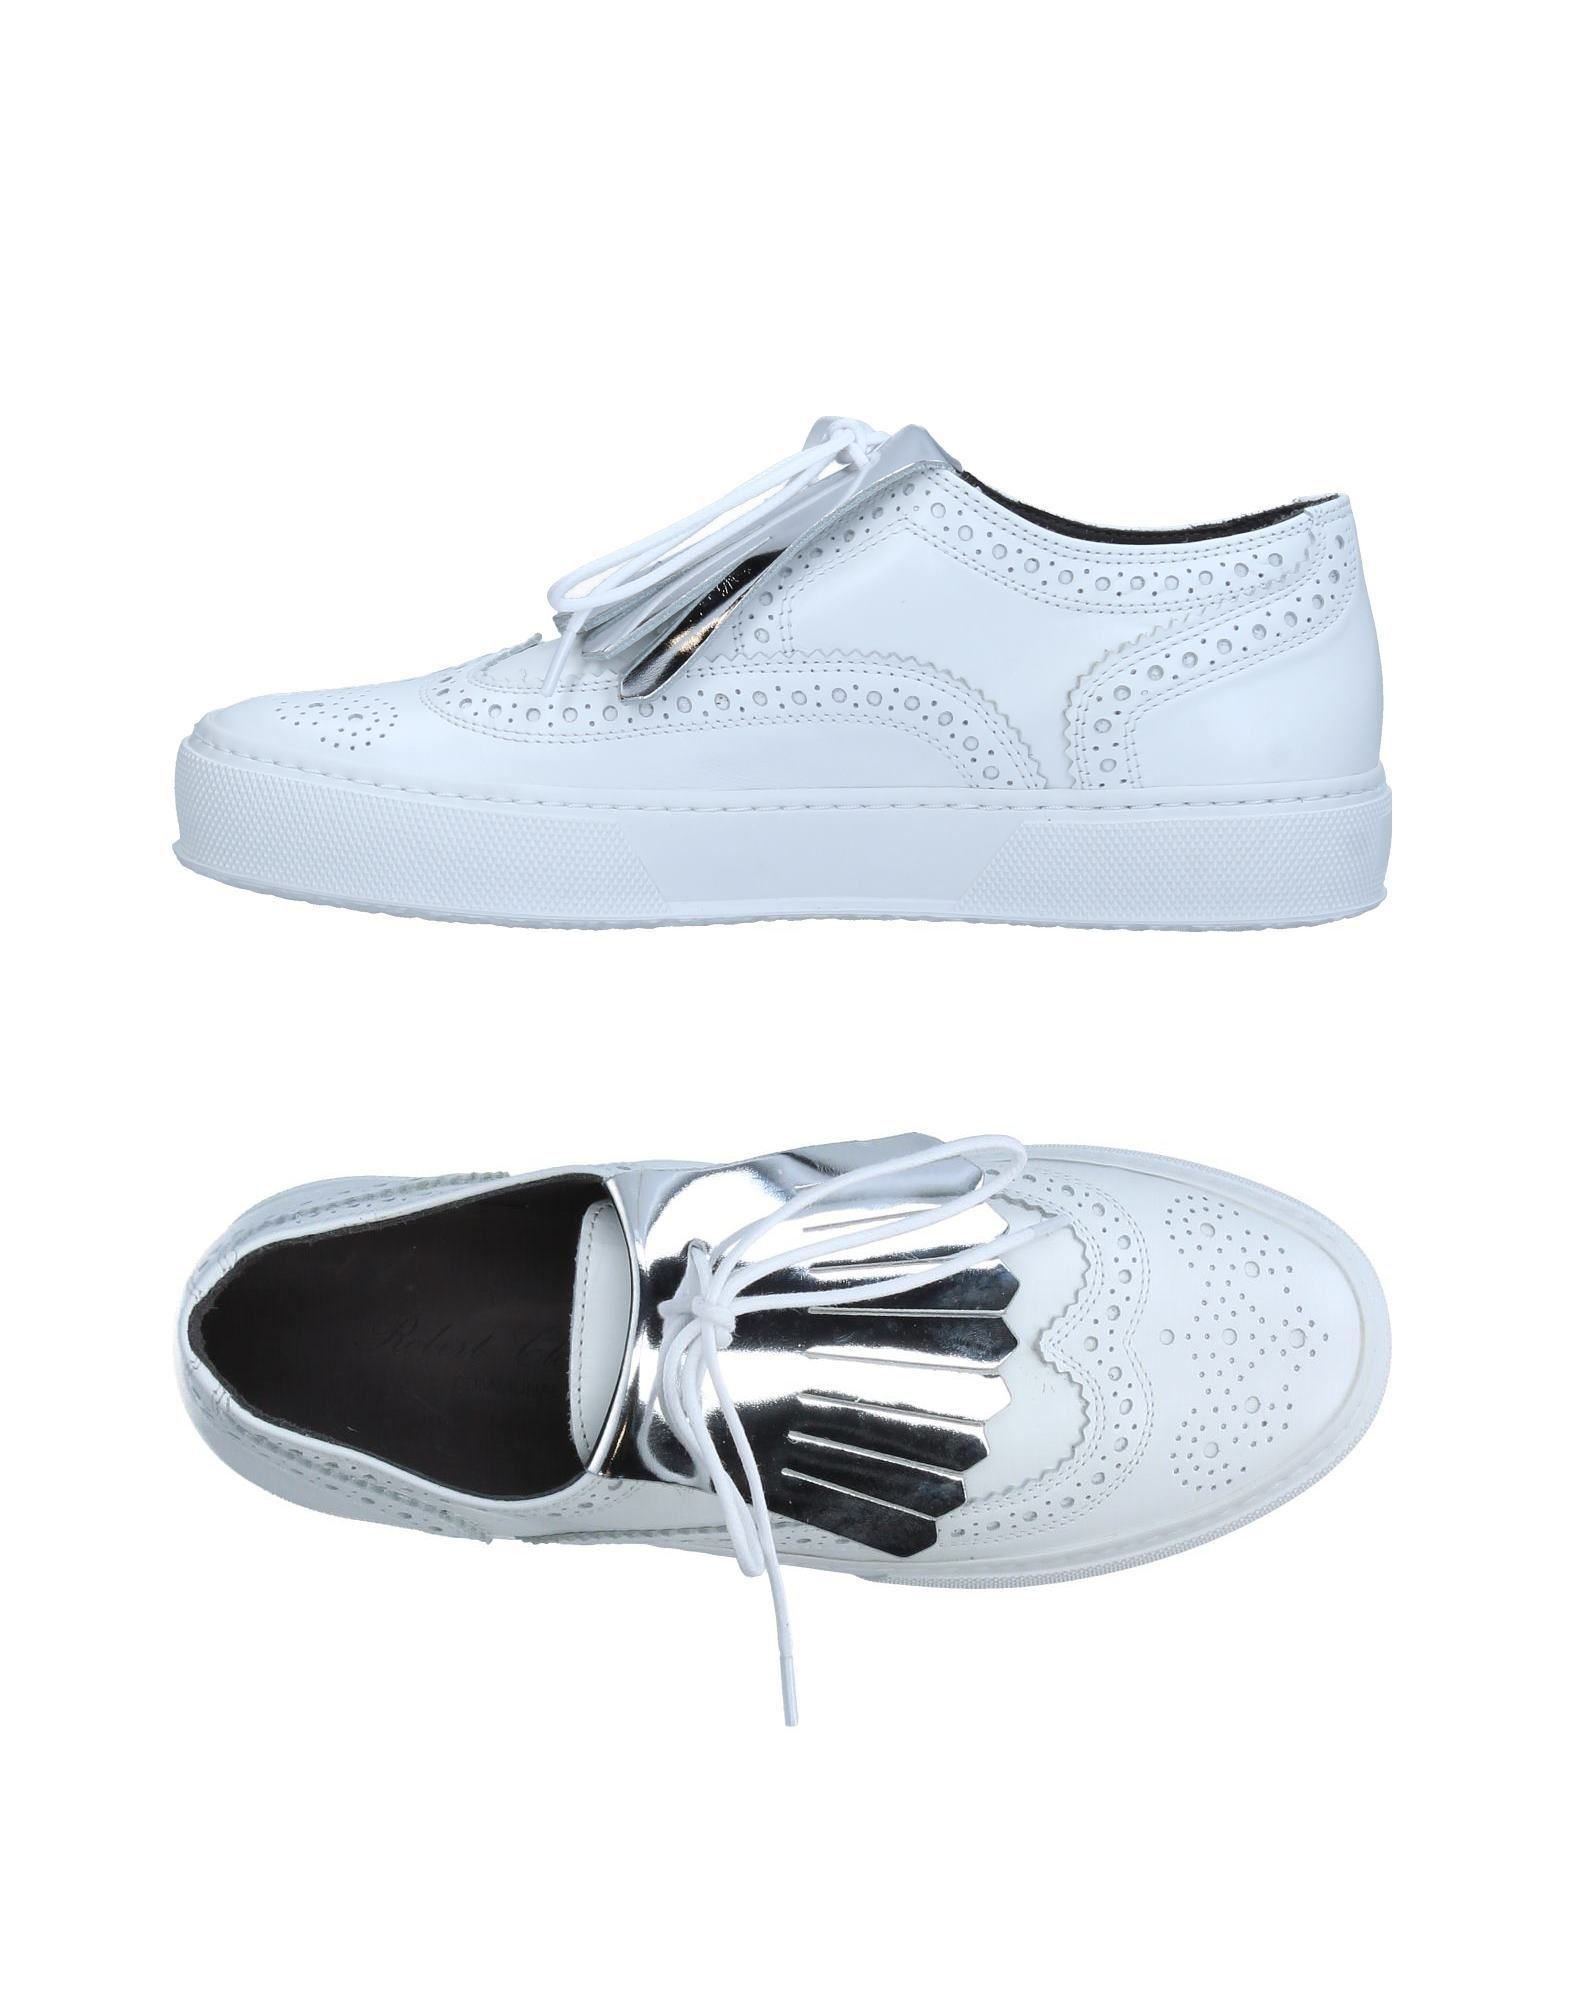 Robert Clergerie Sneakers Sneakers Sneakers - Women Robert Clergerie Sneakers online on  Canada - 11338134AD 306f9b